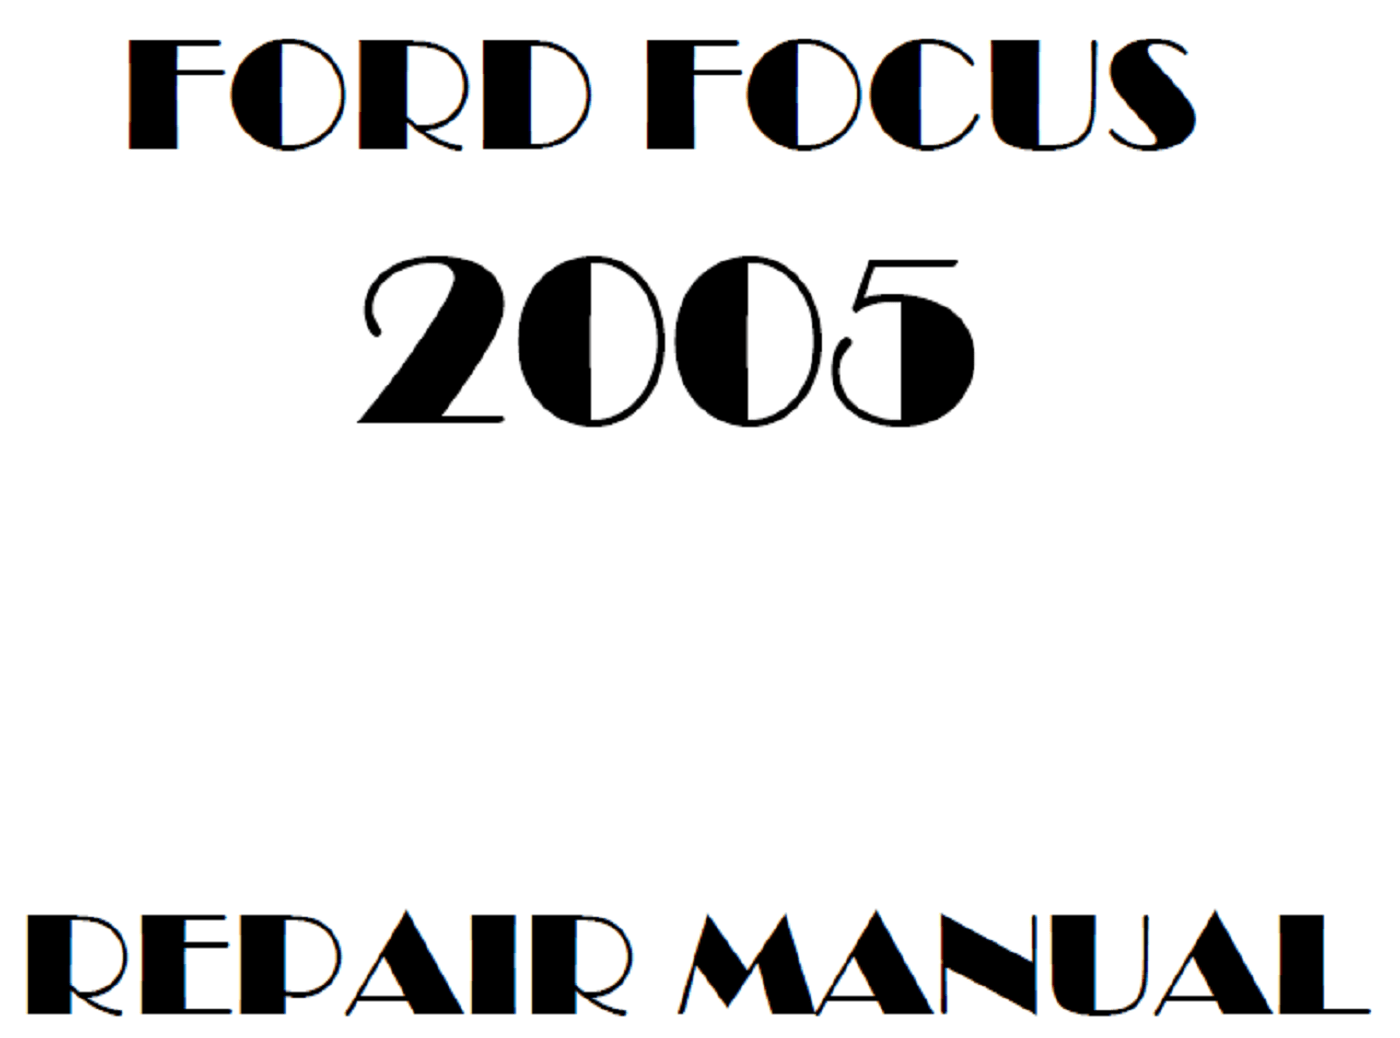 2005 Ford Focus repair manual